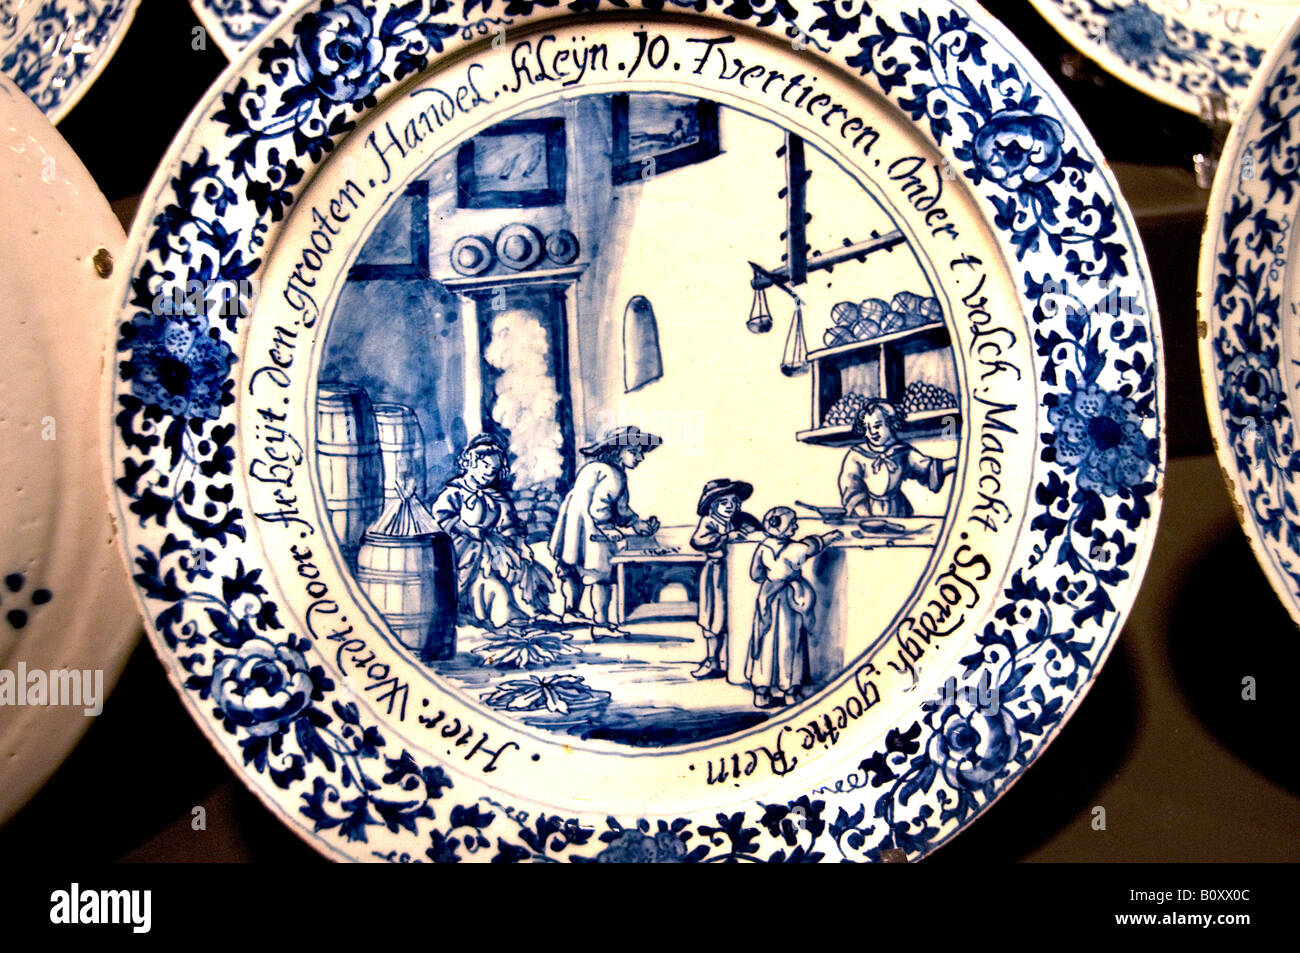 Delfts Blauw  Delftware or Delft pottery is blue and white pottery traditionally made in and around Delft Netherlands - Stock Image